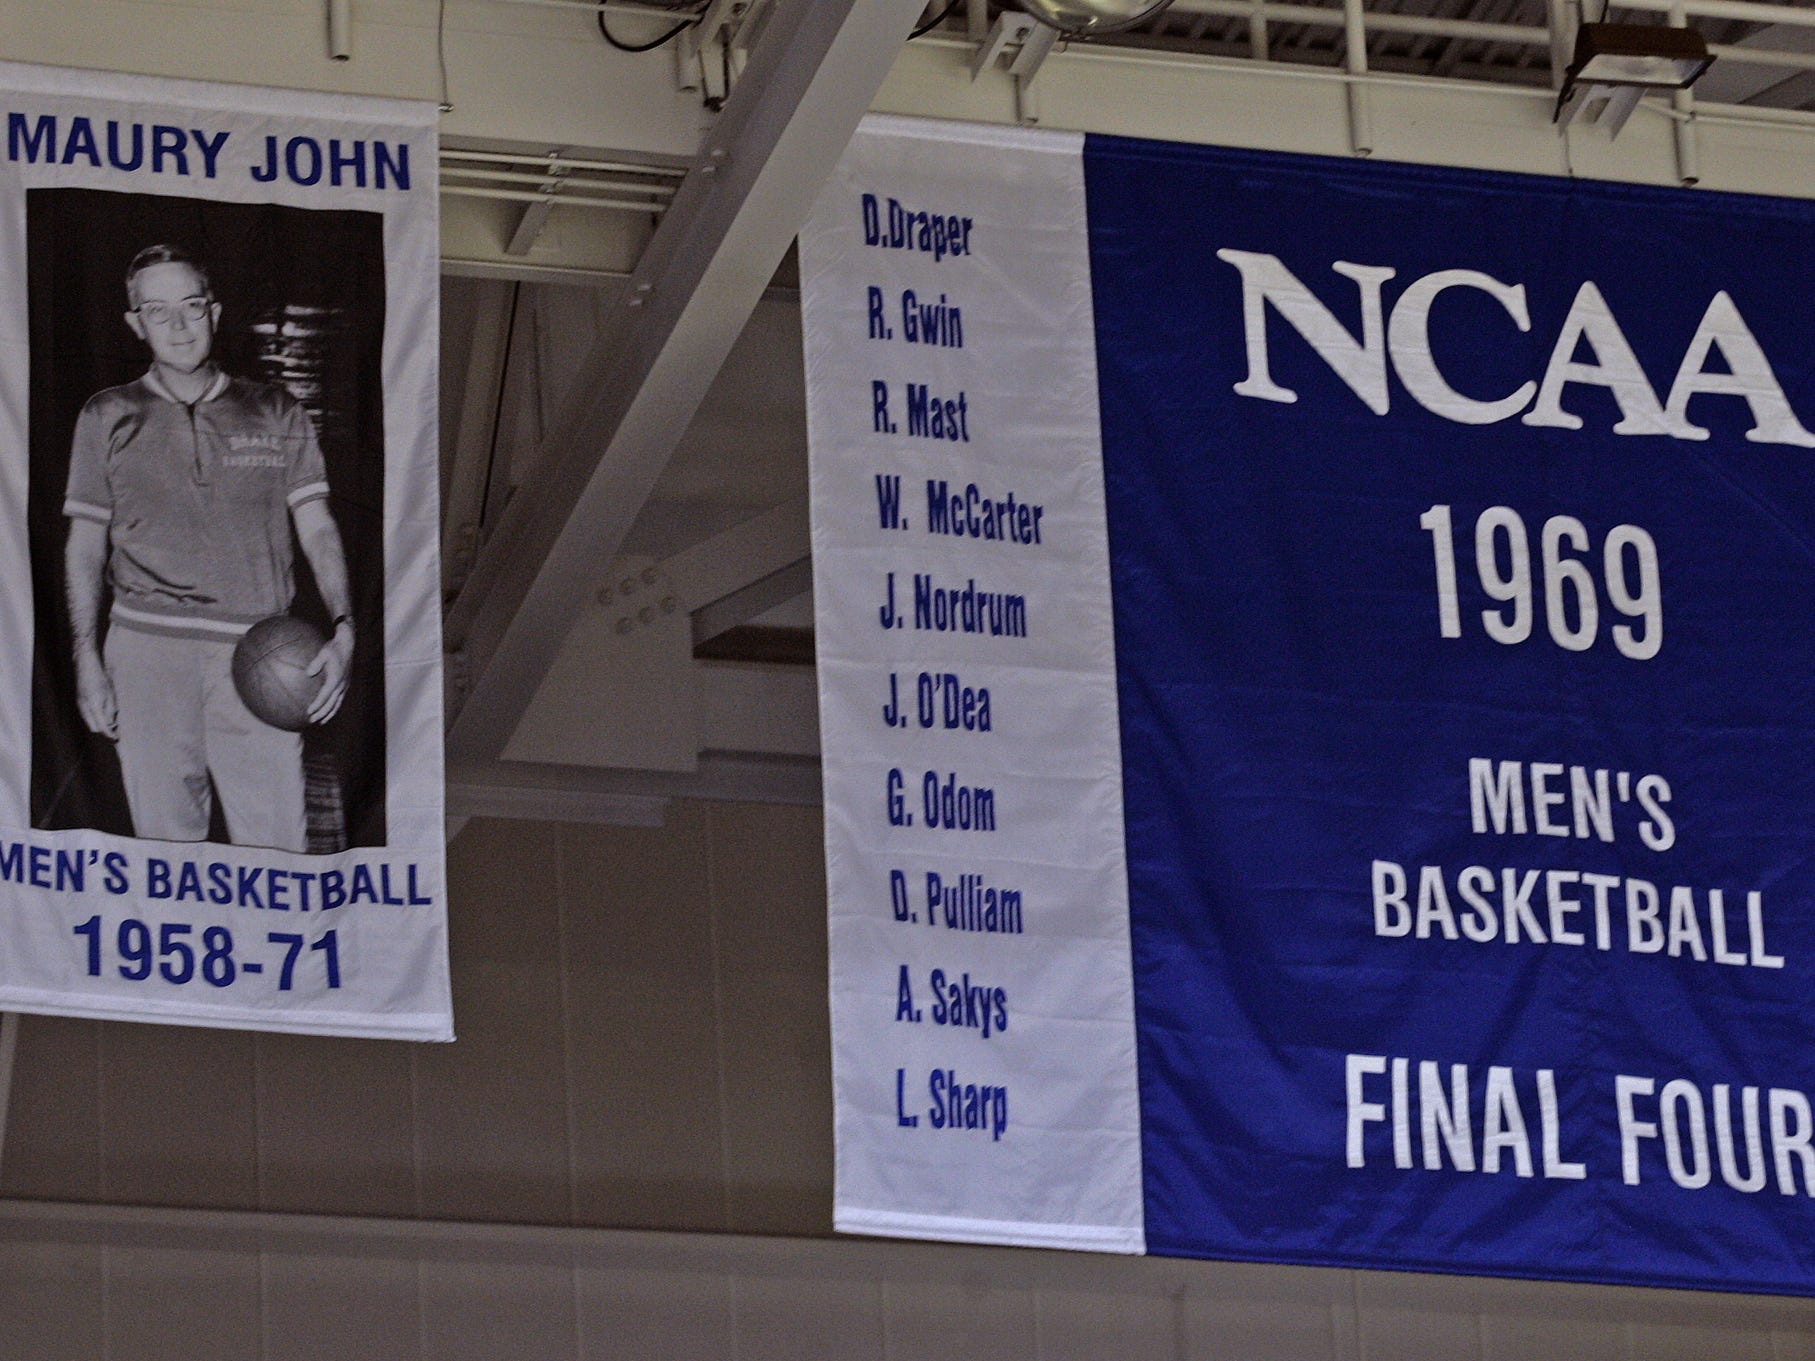 From 2008: Banners recognizing longtime Drake men's basketball coach Maury John and the school's 1969 Final Four team are unveiled during a 2008 ceremony recognizing that NCAA Tournament run by the Bulldogs.